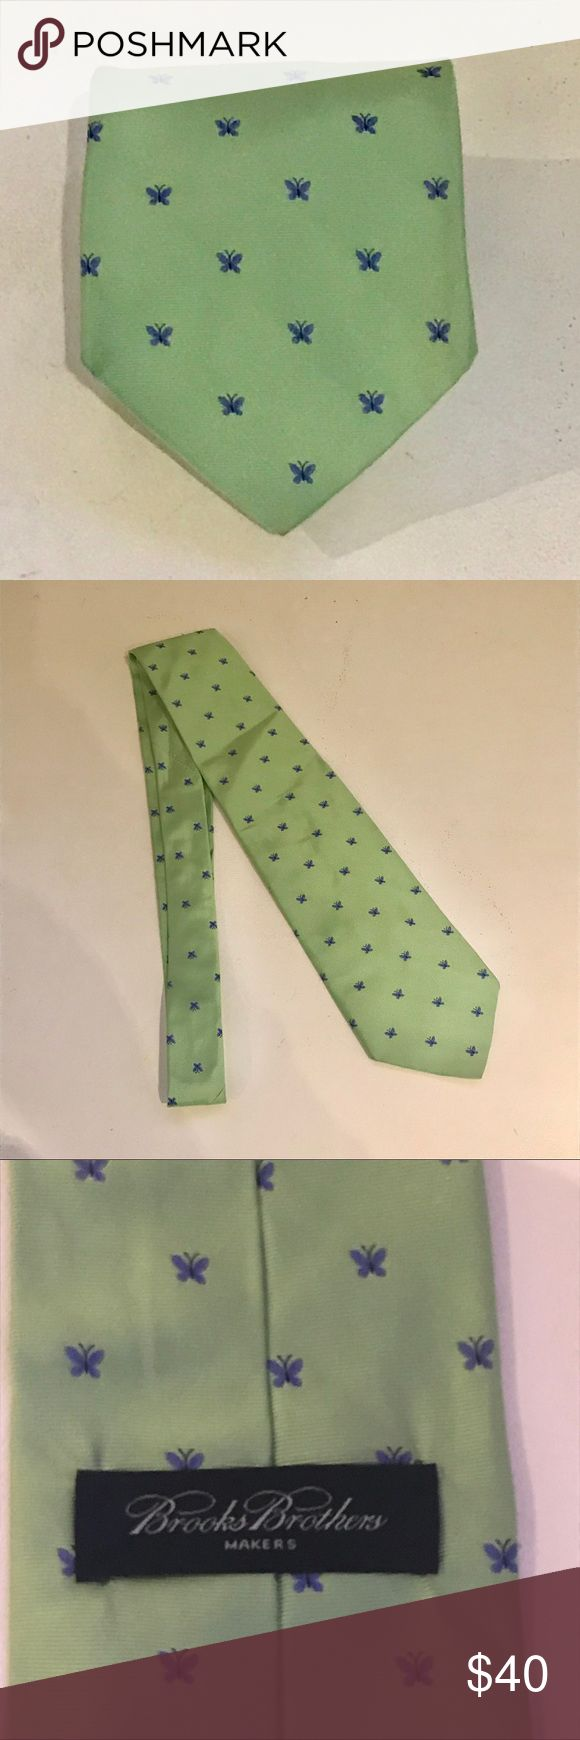 Brooks Brothers Mint Silk Cerulean Butterfly Tie Brooks Brothers Mint Seafoam Green Silk Cerulean Butterfly Tie. Excellent condition no issues Brooks Brothers Accessories Ties